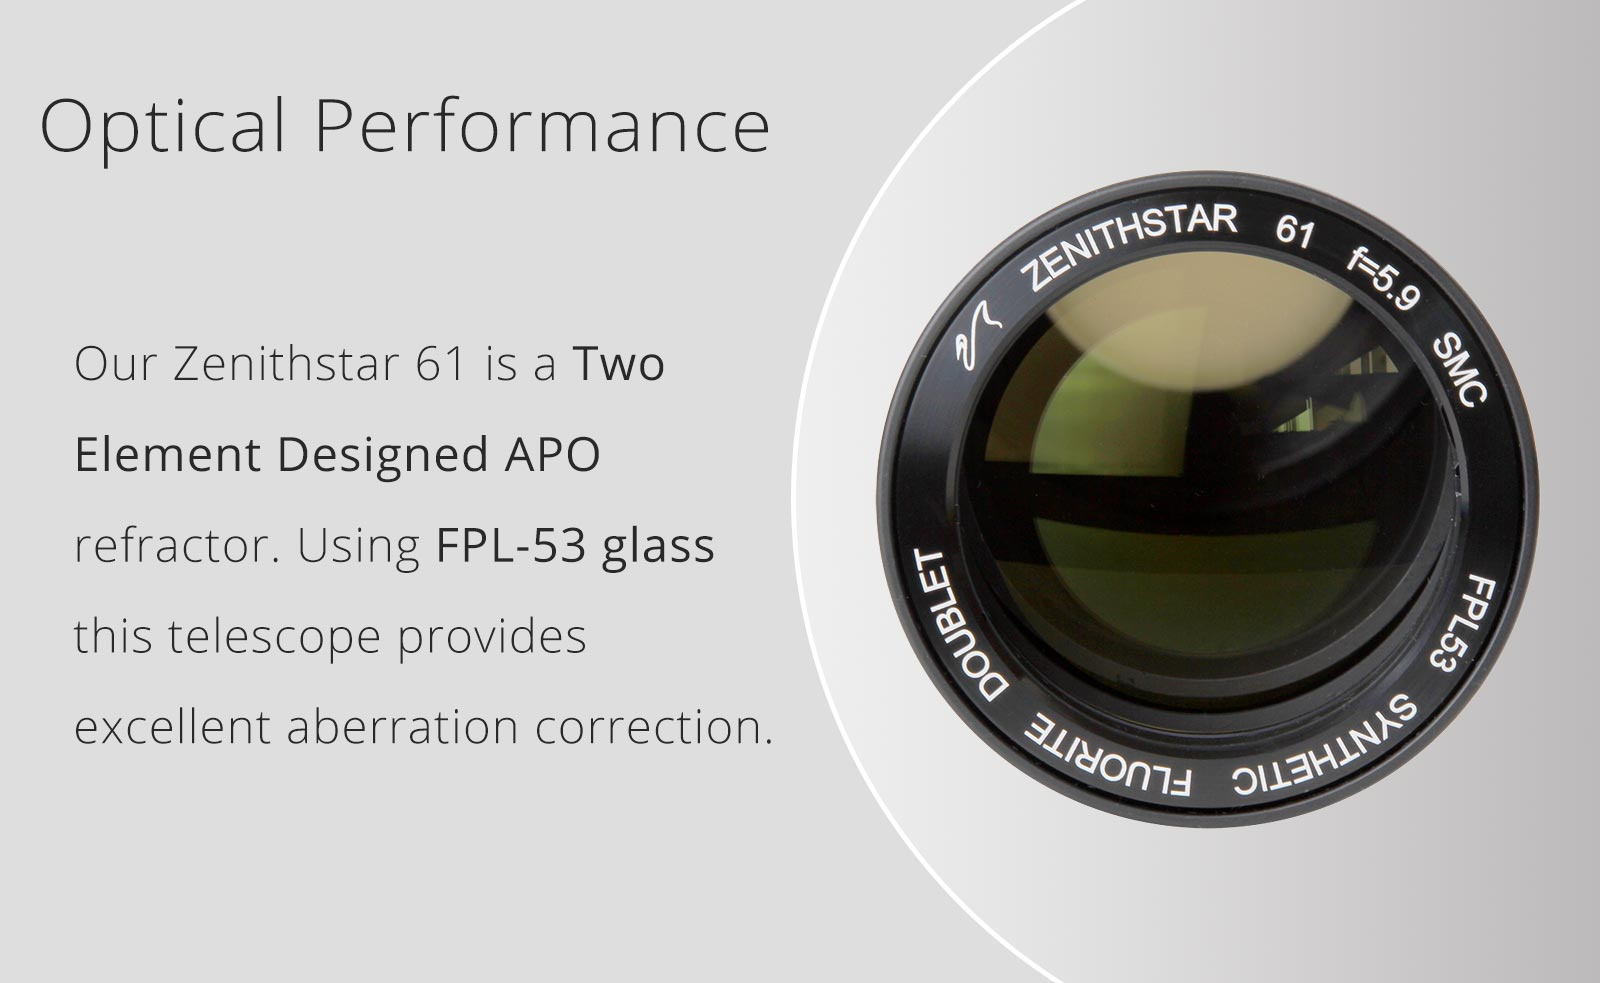 Rifrattore William Optics ZentihStar 61 MARK II APO - F/5.9 (FPL-53 doppietto) completo di: Tubo ottico, fuocheggiatore 2, Supporto a  L girevole con blocco su treppiede o barra GP a 360°.Zenithstar